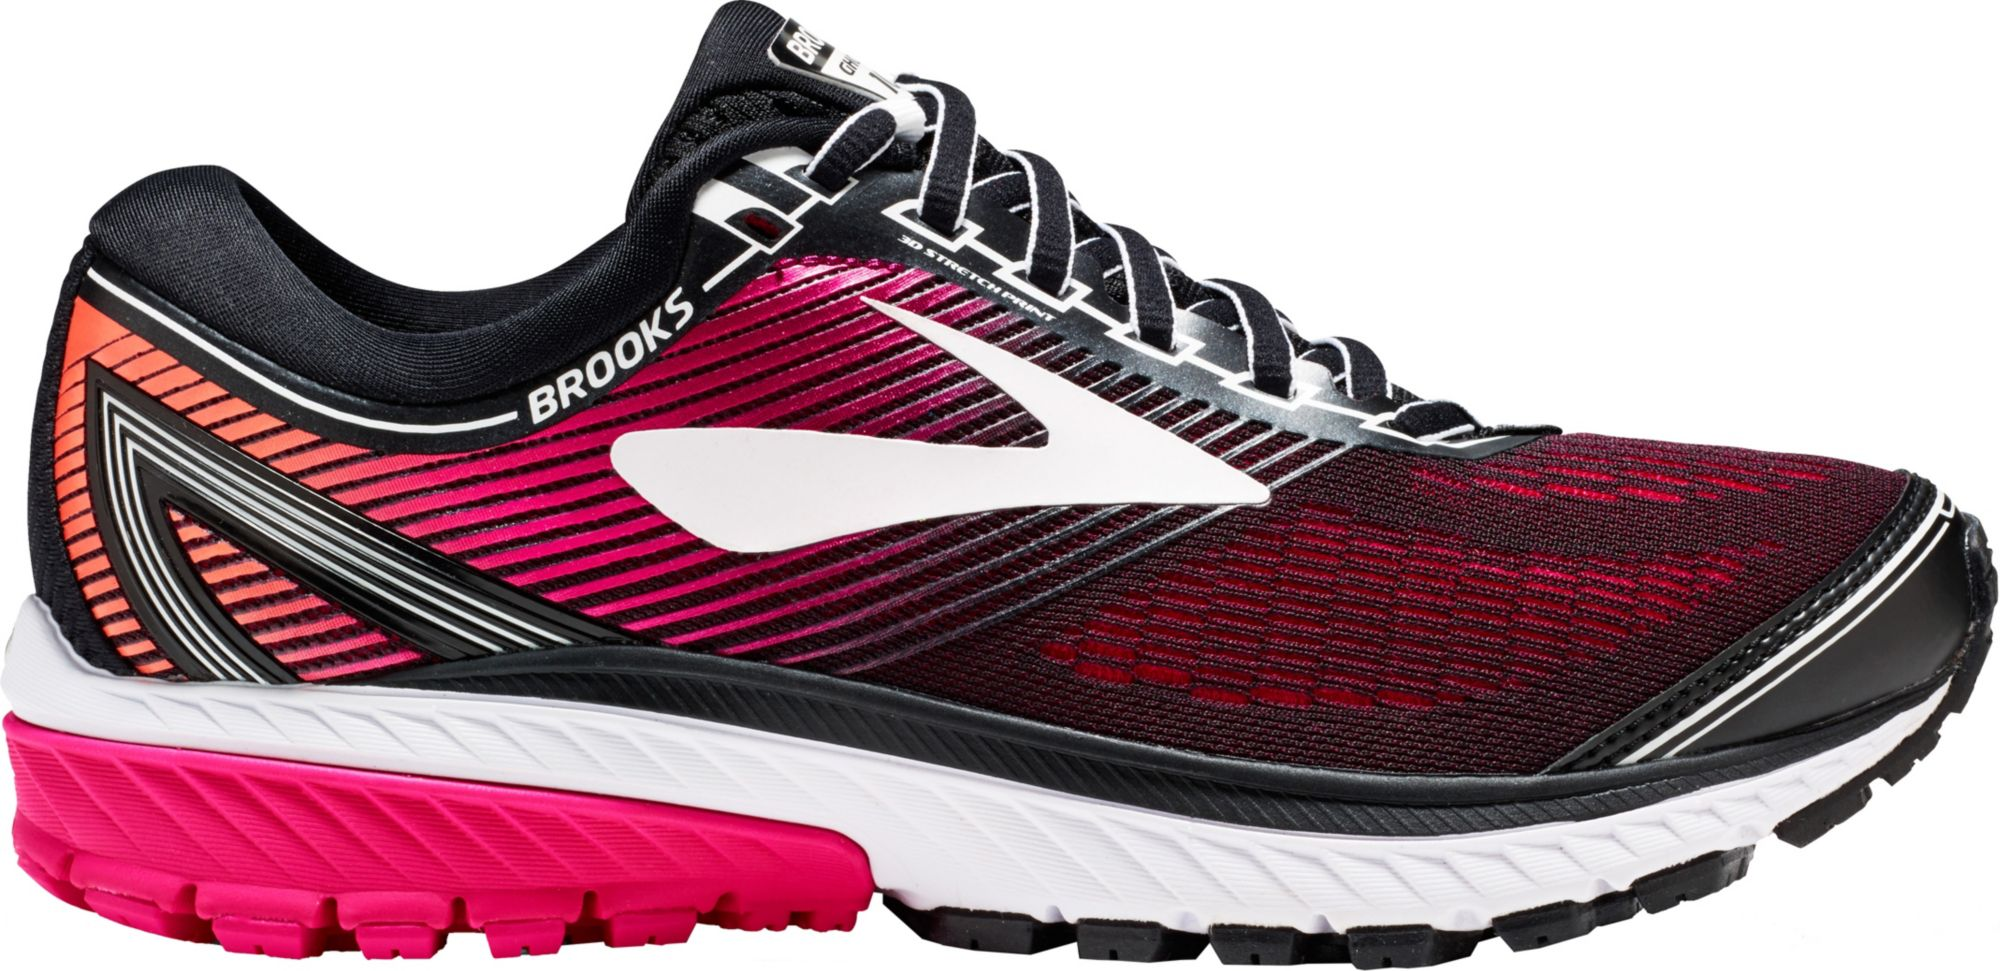 11 Most Comfortable Running Shoes for women